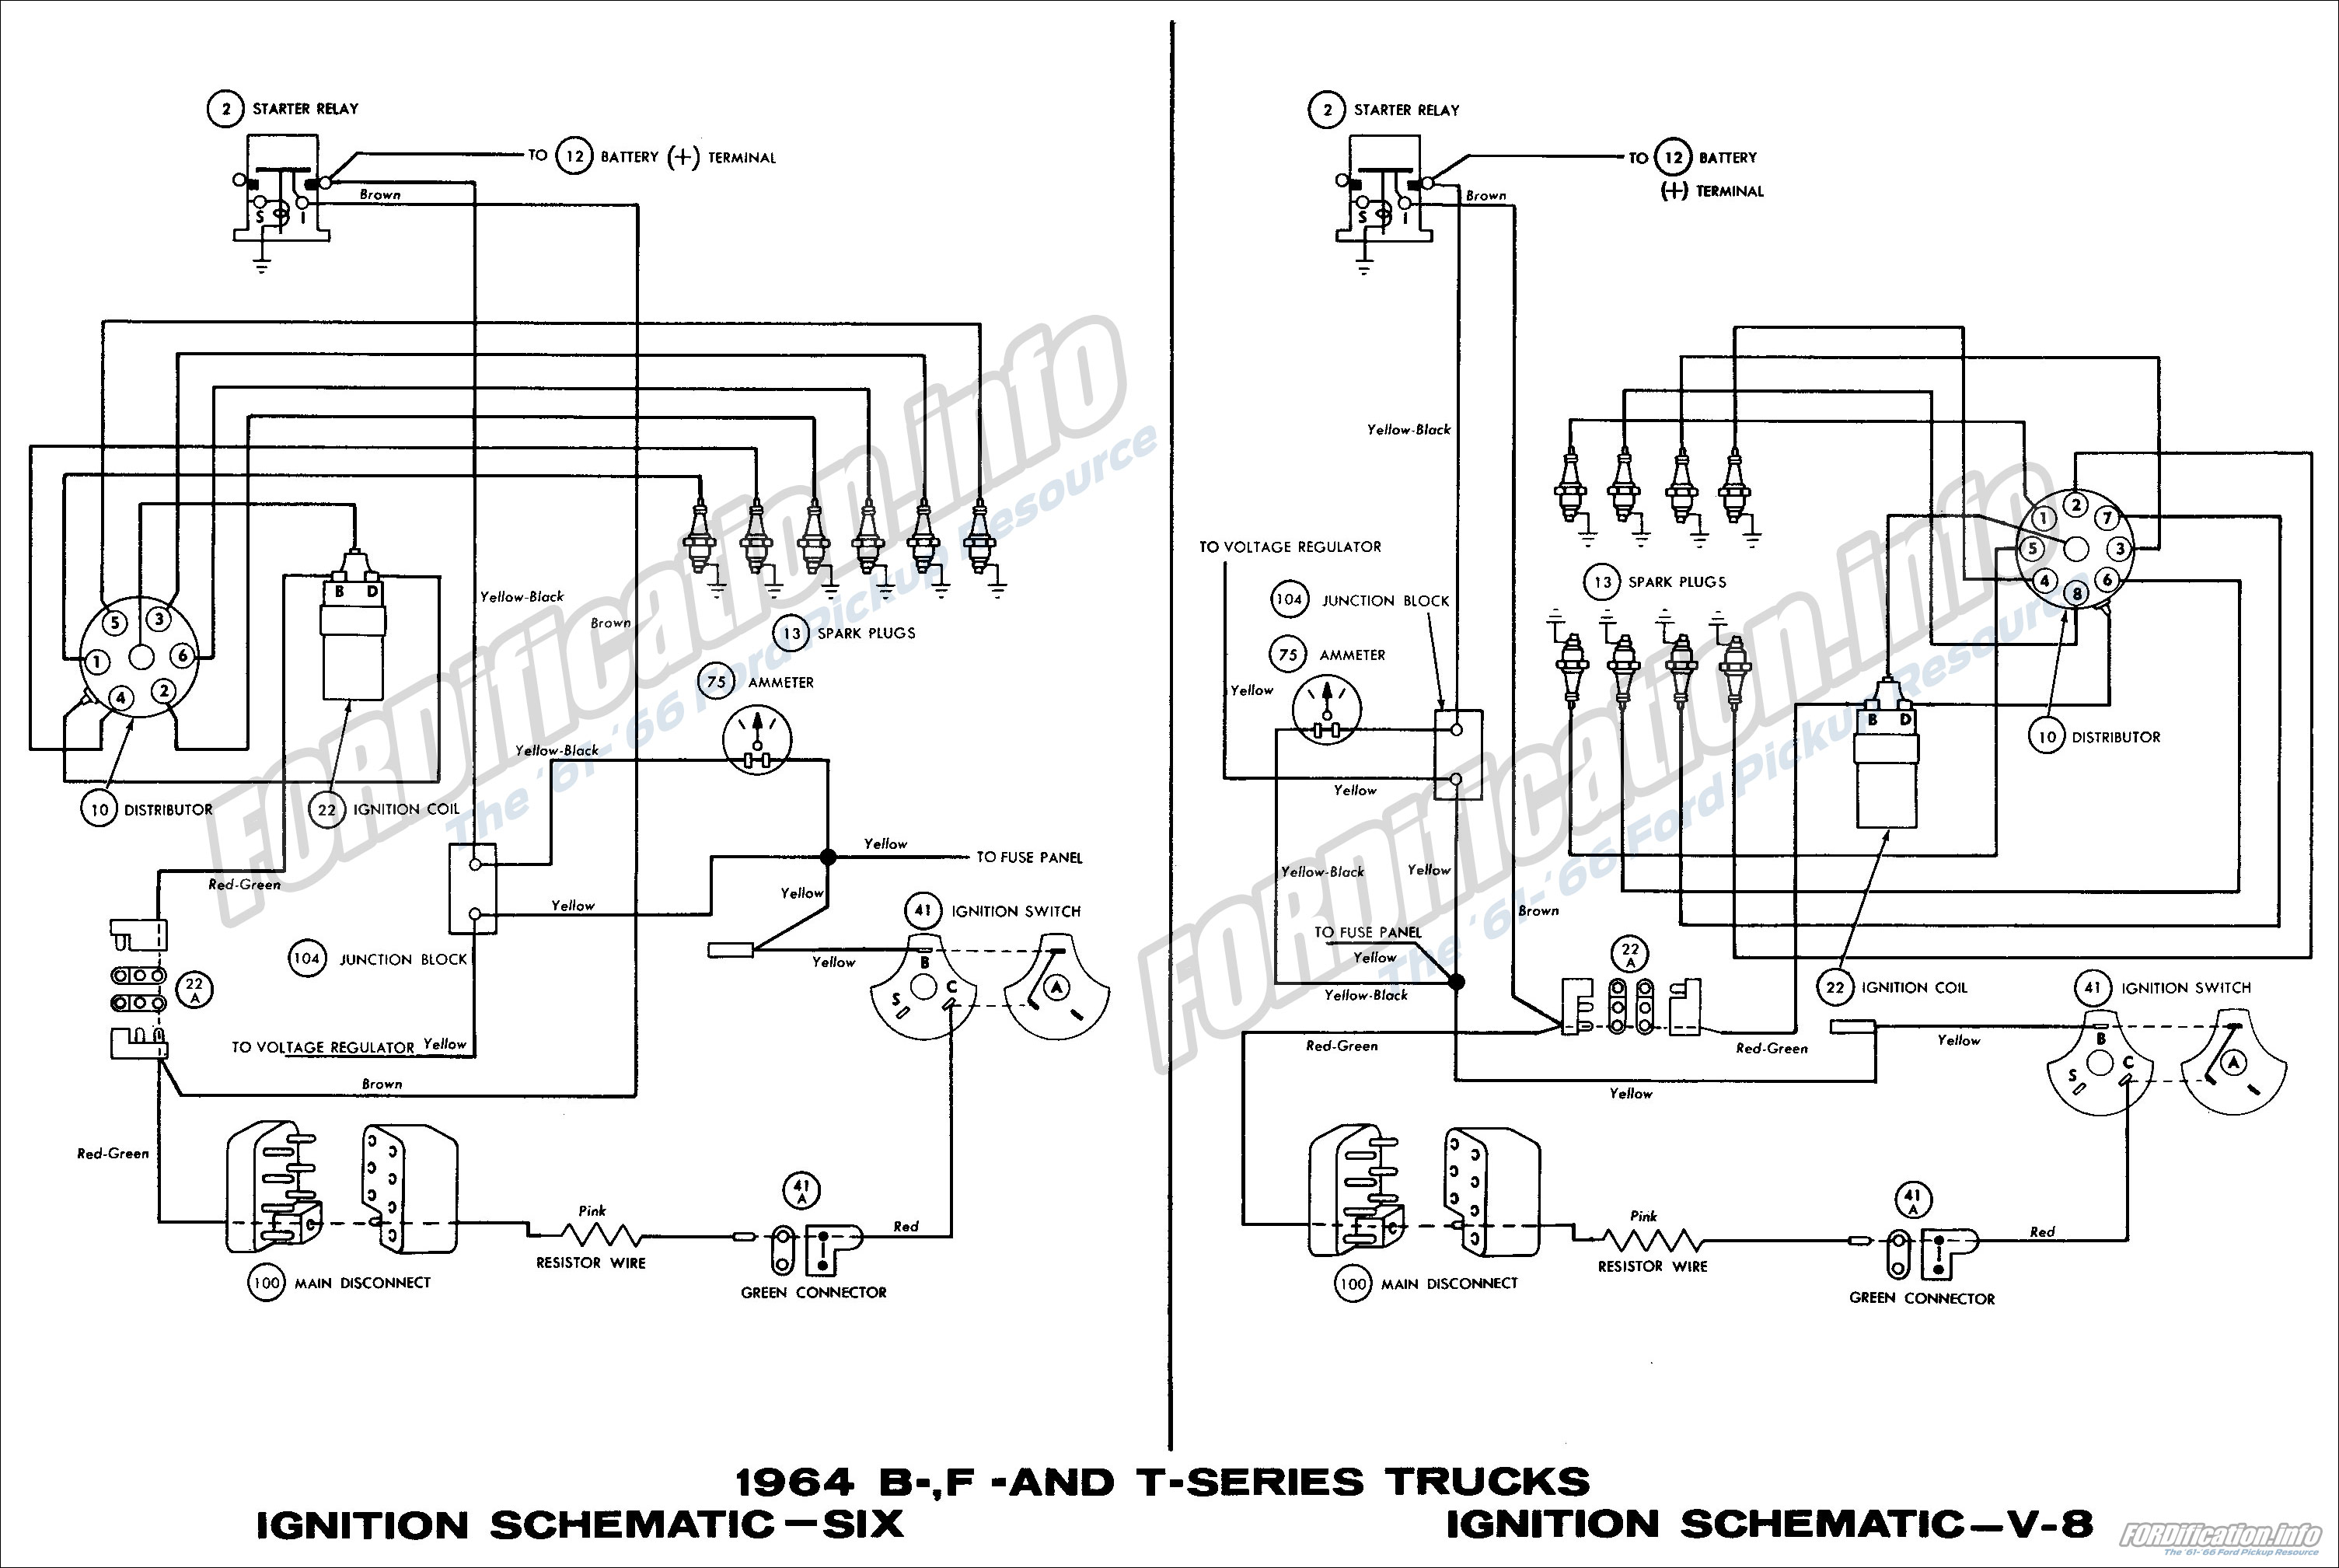 1964_03 wiring diagrams ford pickups the wiring diagram readingrat net Ford E 350 Wiring Diagrams at panicattacktreatment.co